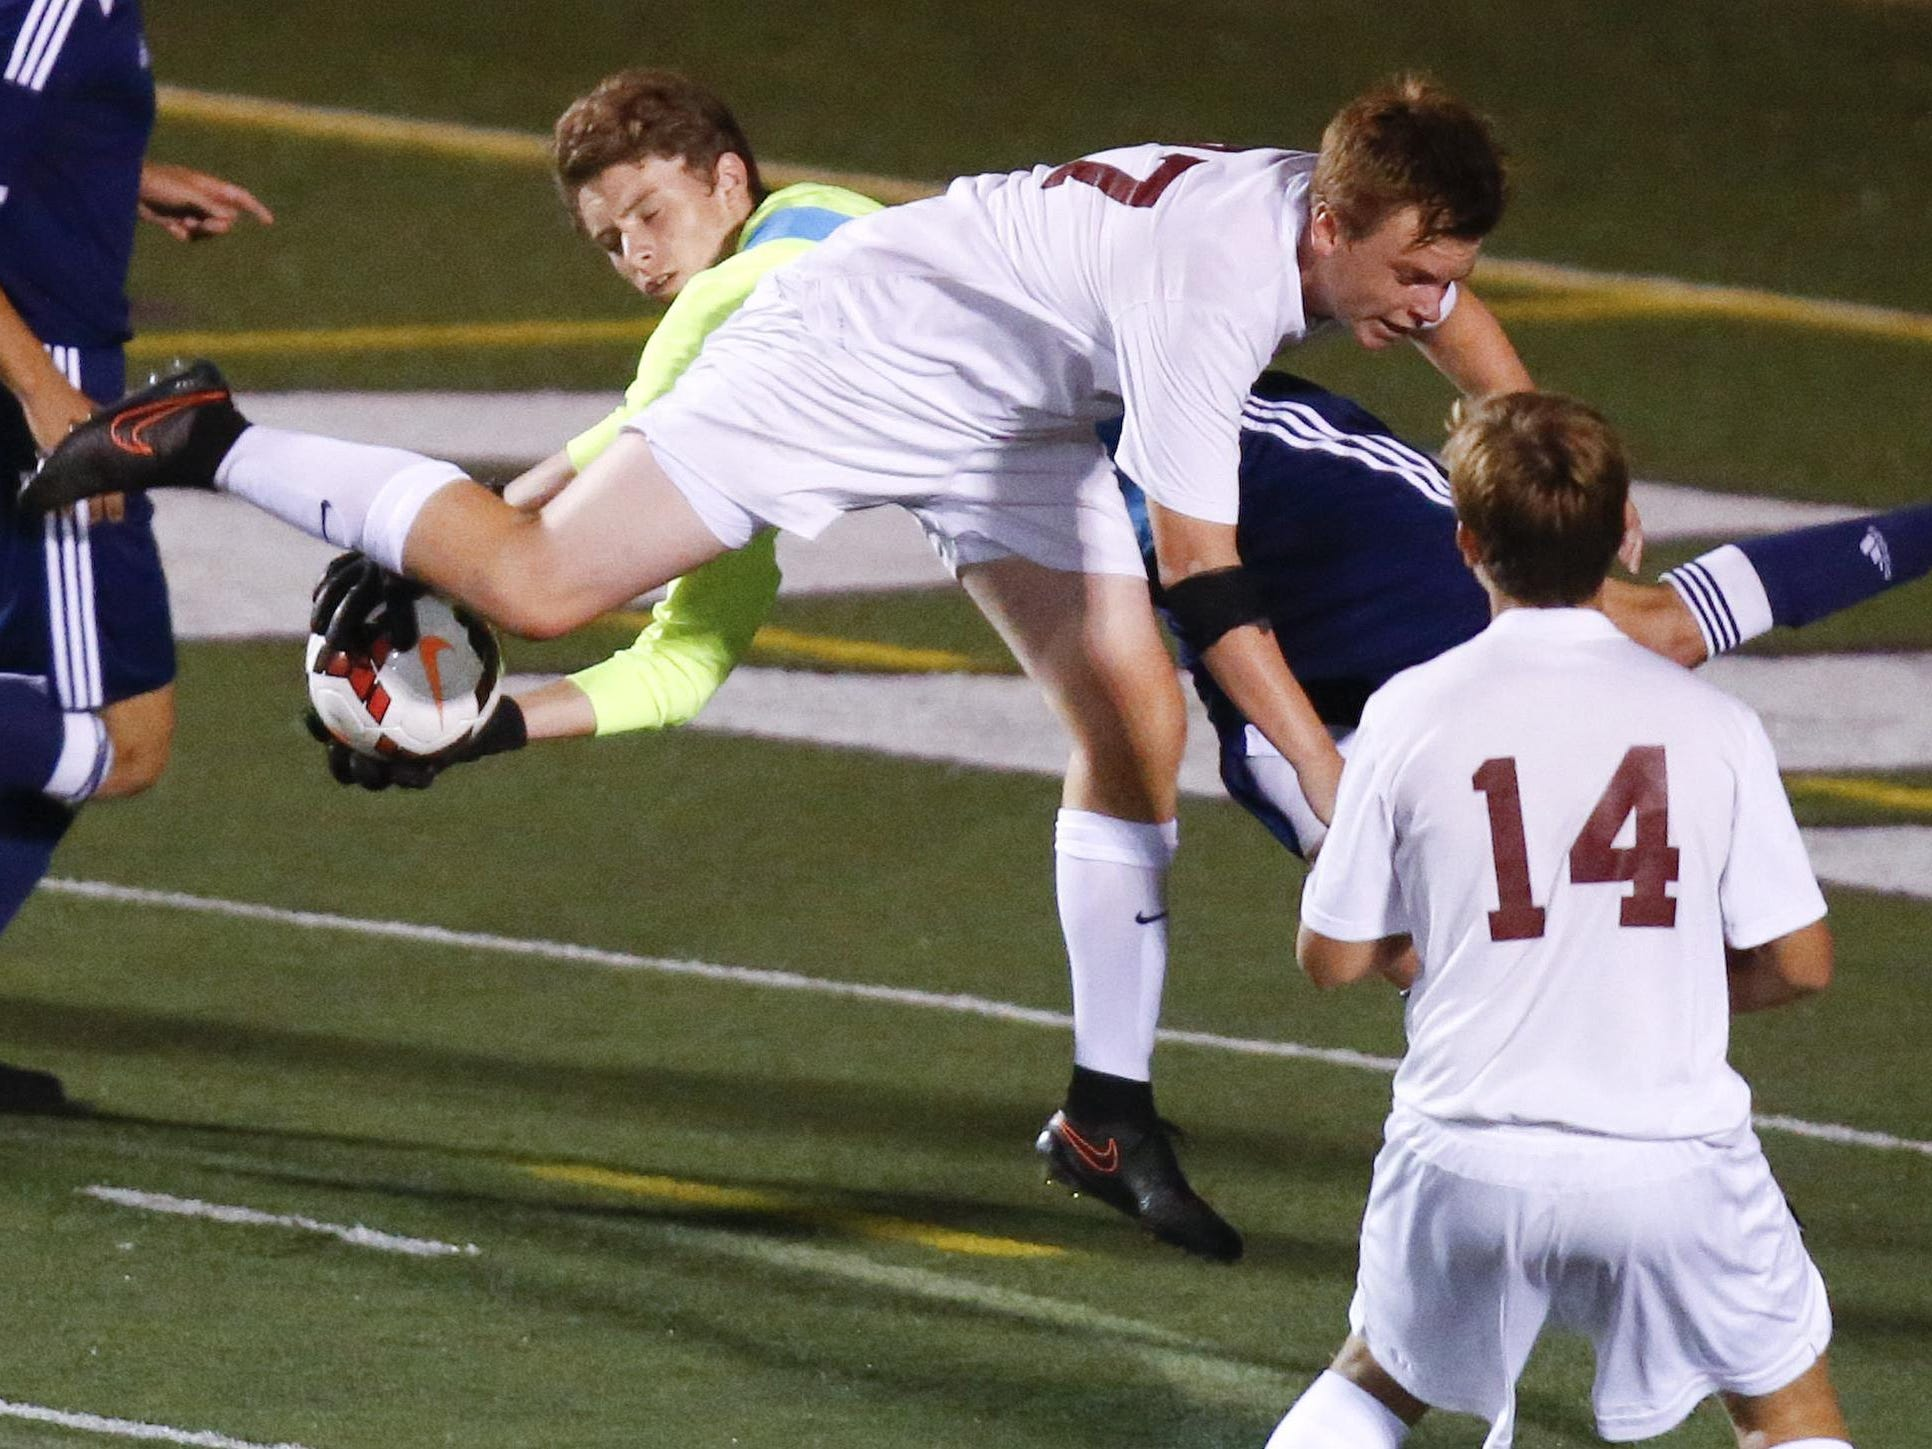 Caravel's Lucas Partlow collides with Salesianum goalkeeper Gavin Campbell in the first half of Salesianum's 3-0 win at Caravel Tuesday.